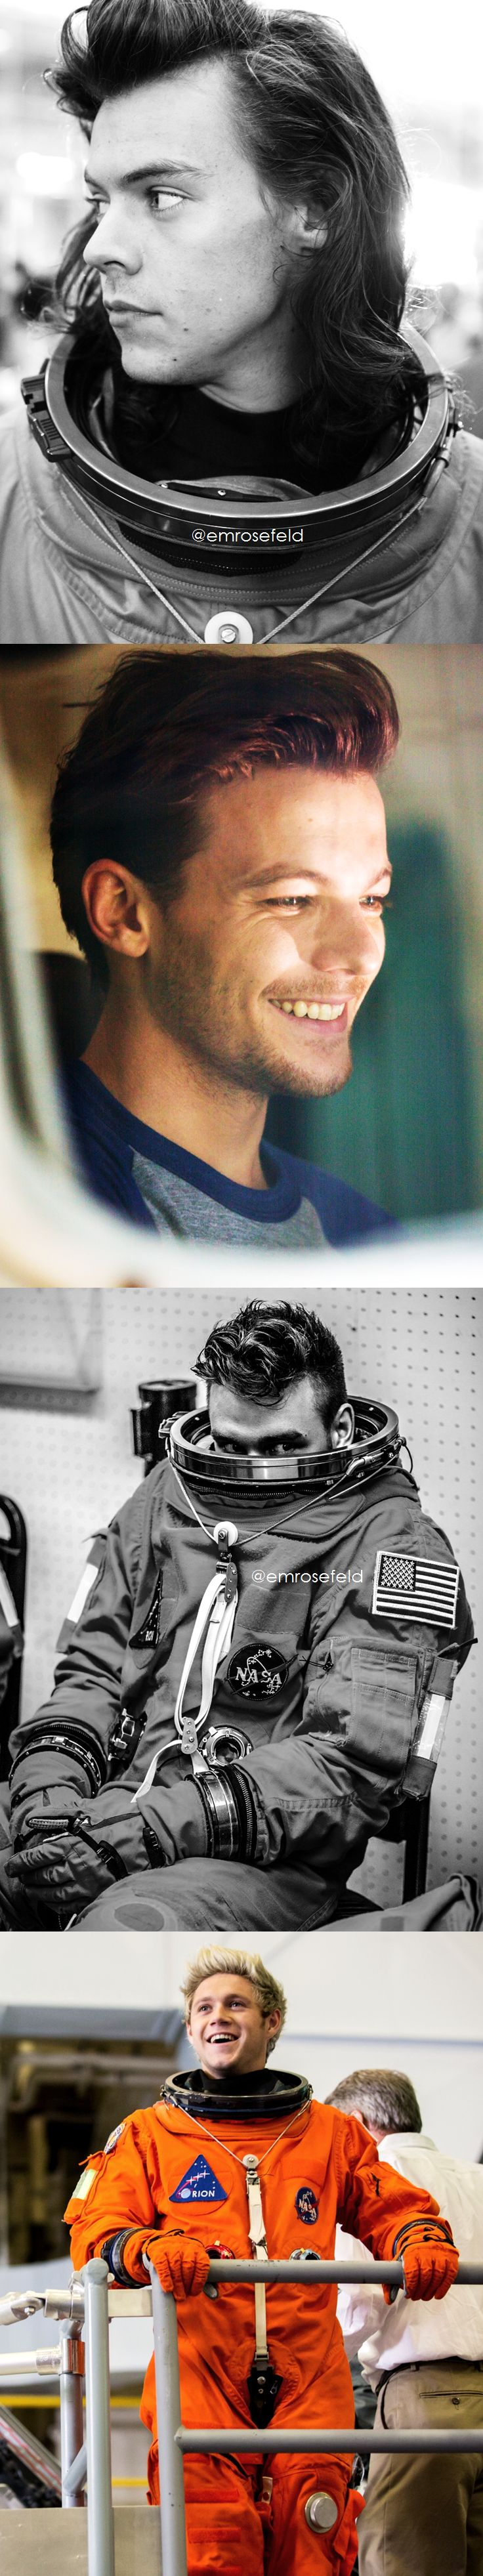 One Direction: Drag me Down music video  WATCH IT HERE: https://www.youtube.com/watch?v=Jwgf3wmiA04